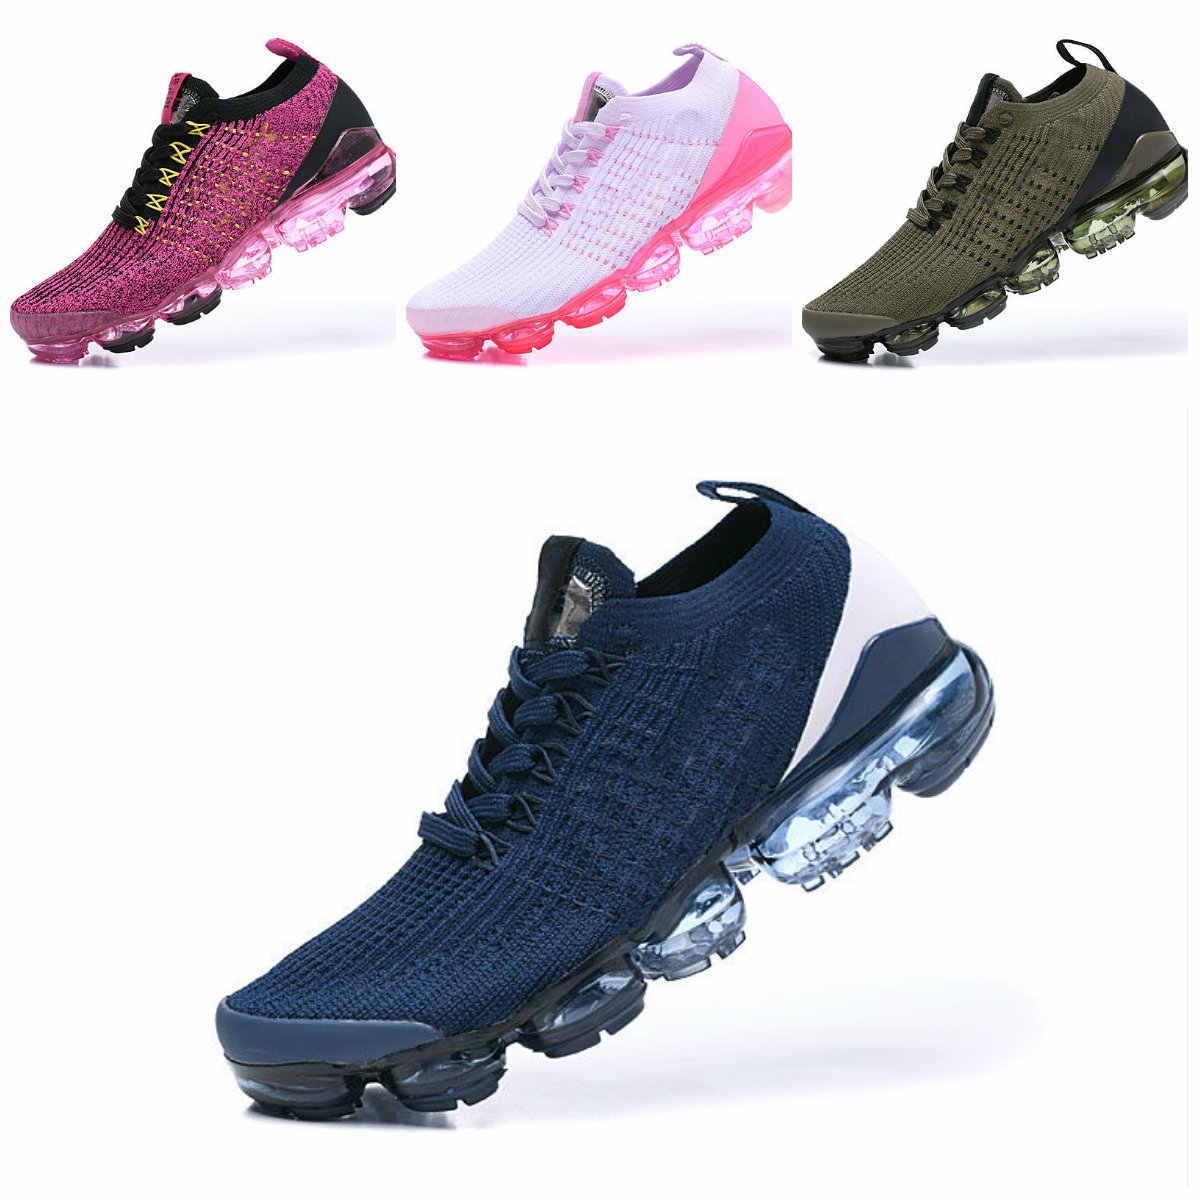 f4ad896e69c1e Detail Feedback Questions about 2019 men s running shoes 97 OG QS ...